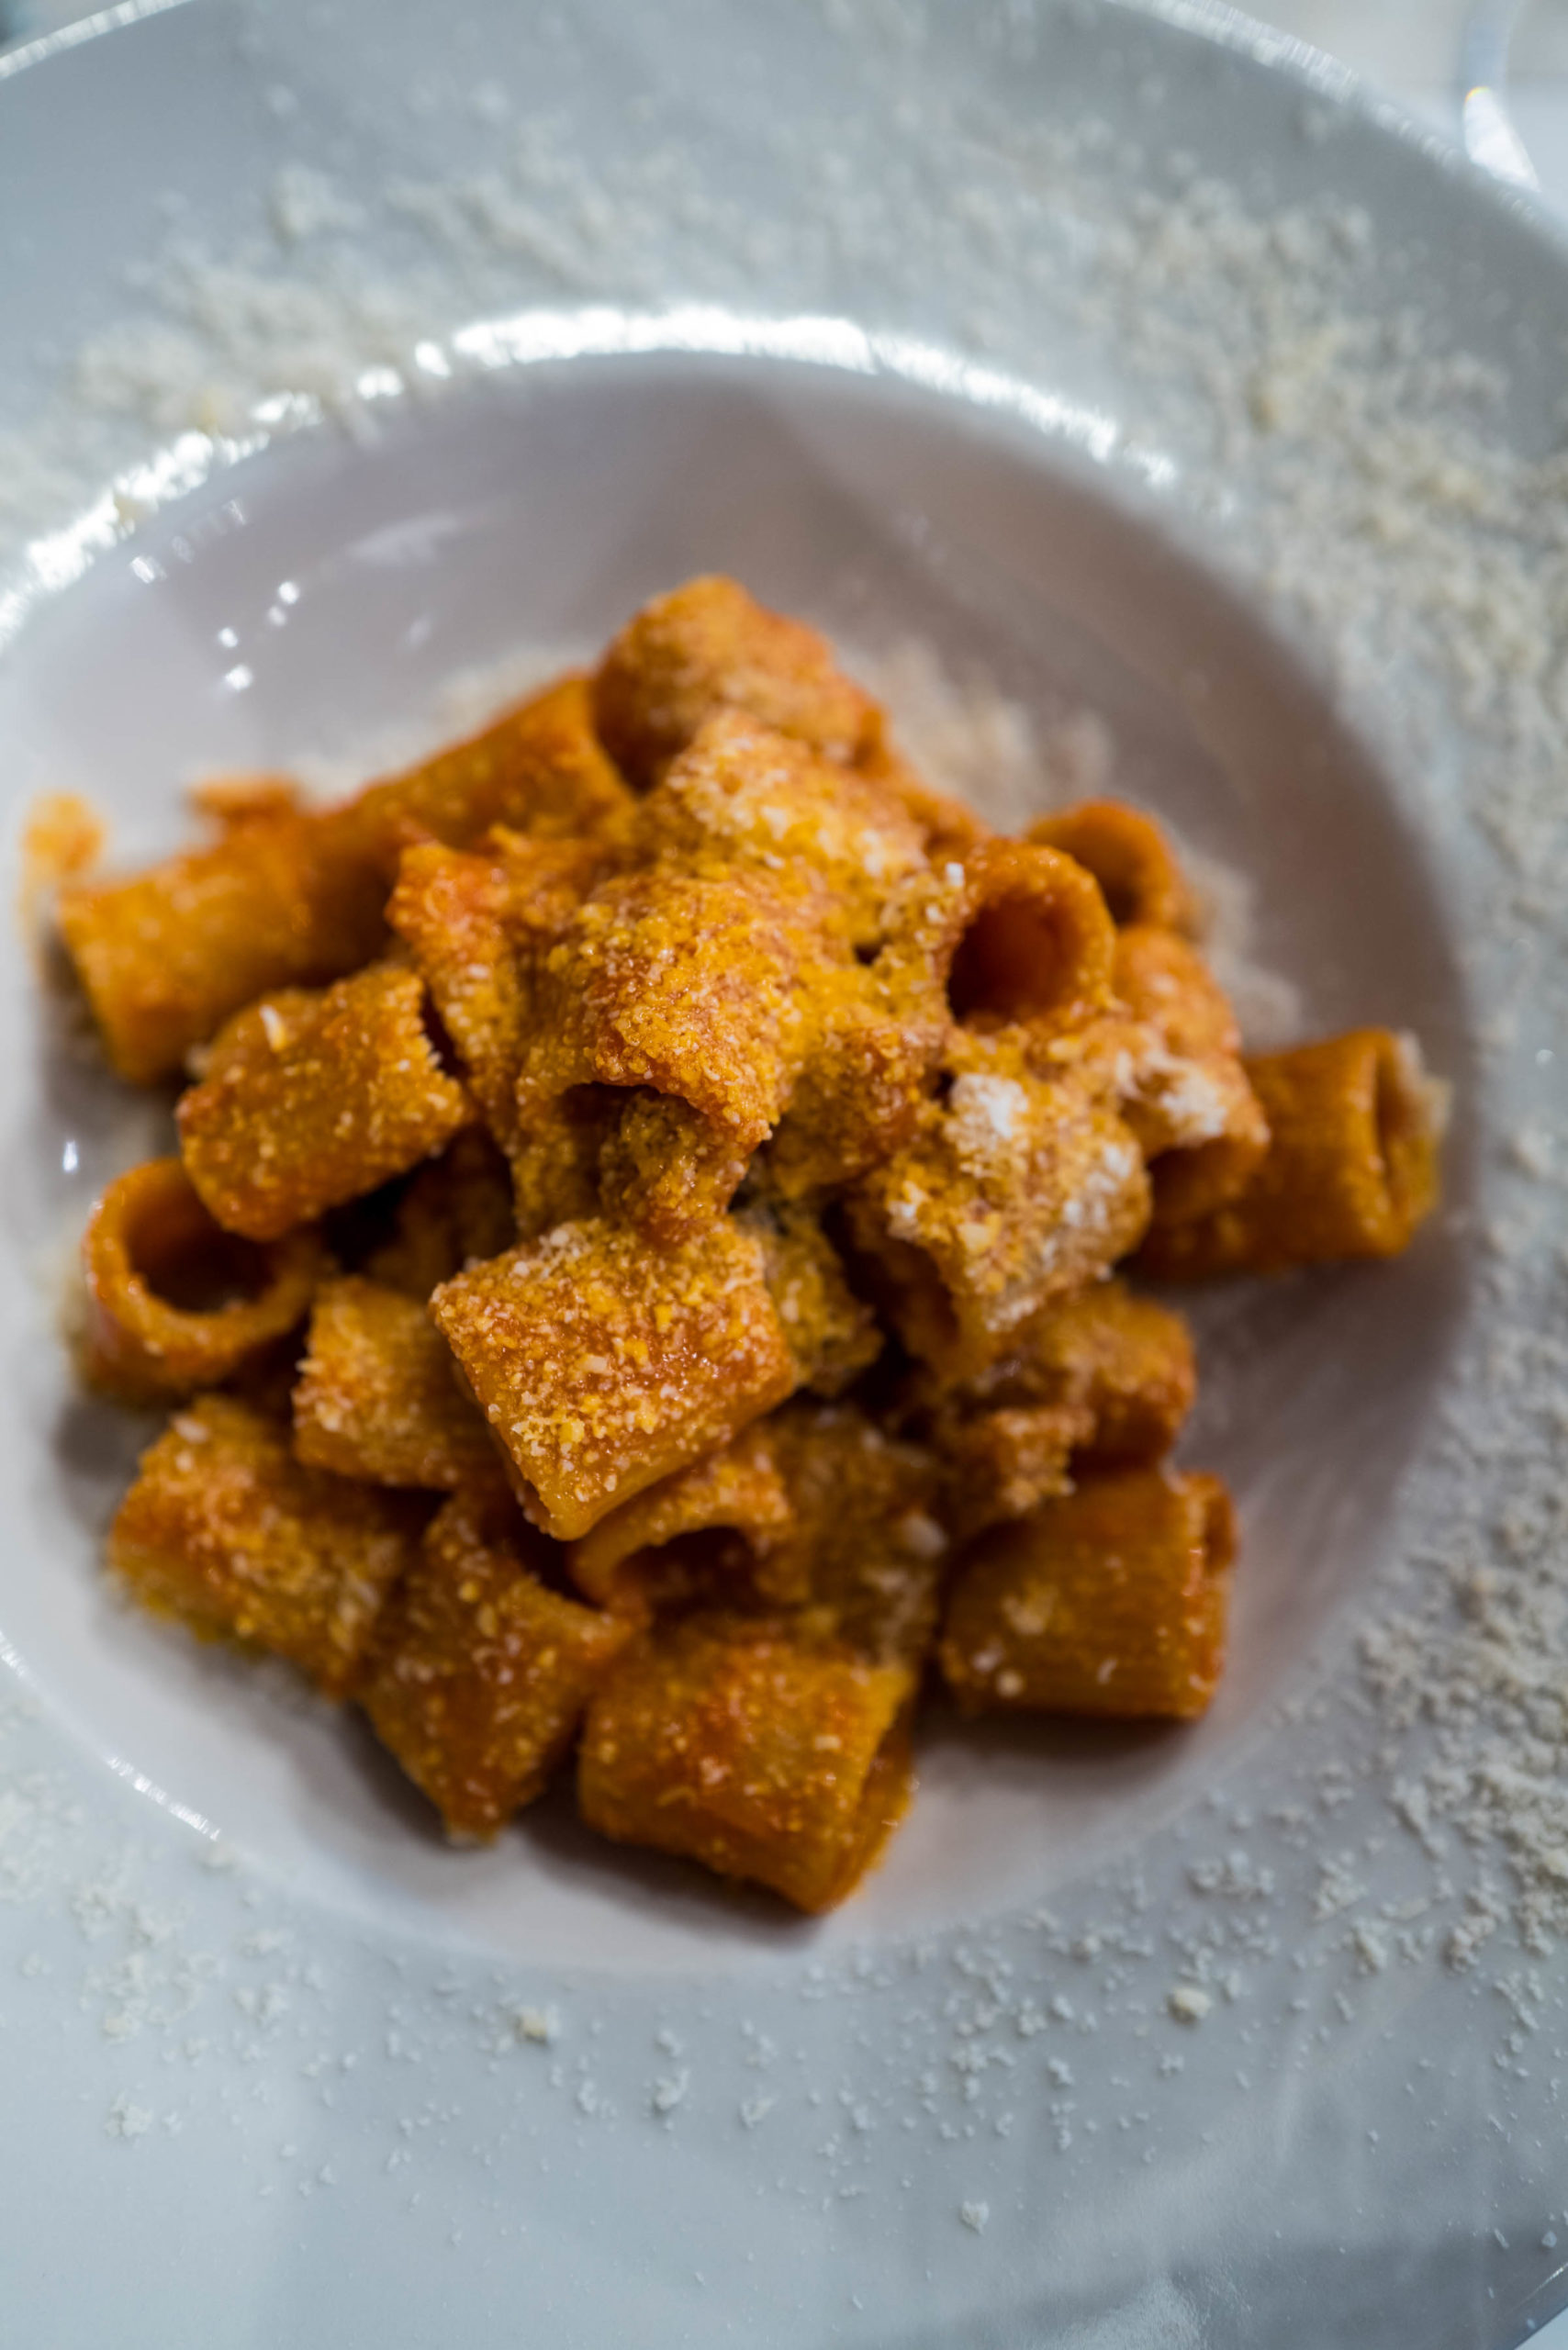 Order the Roman pasta Amatriciana at Roscioli in Rome made with tomato sauce and Guanciale, The Taste Edit #pasta #rome #italy #travel #restaurant